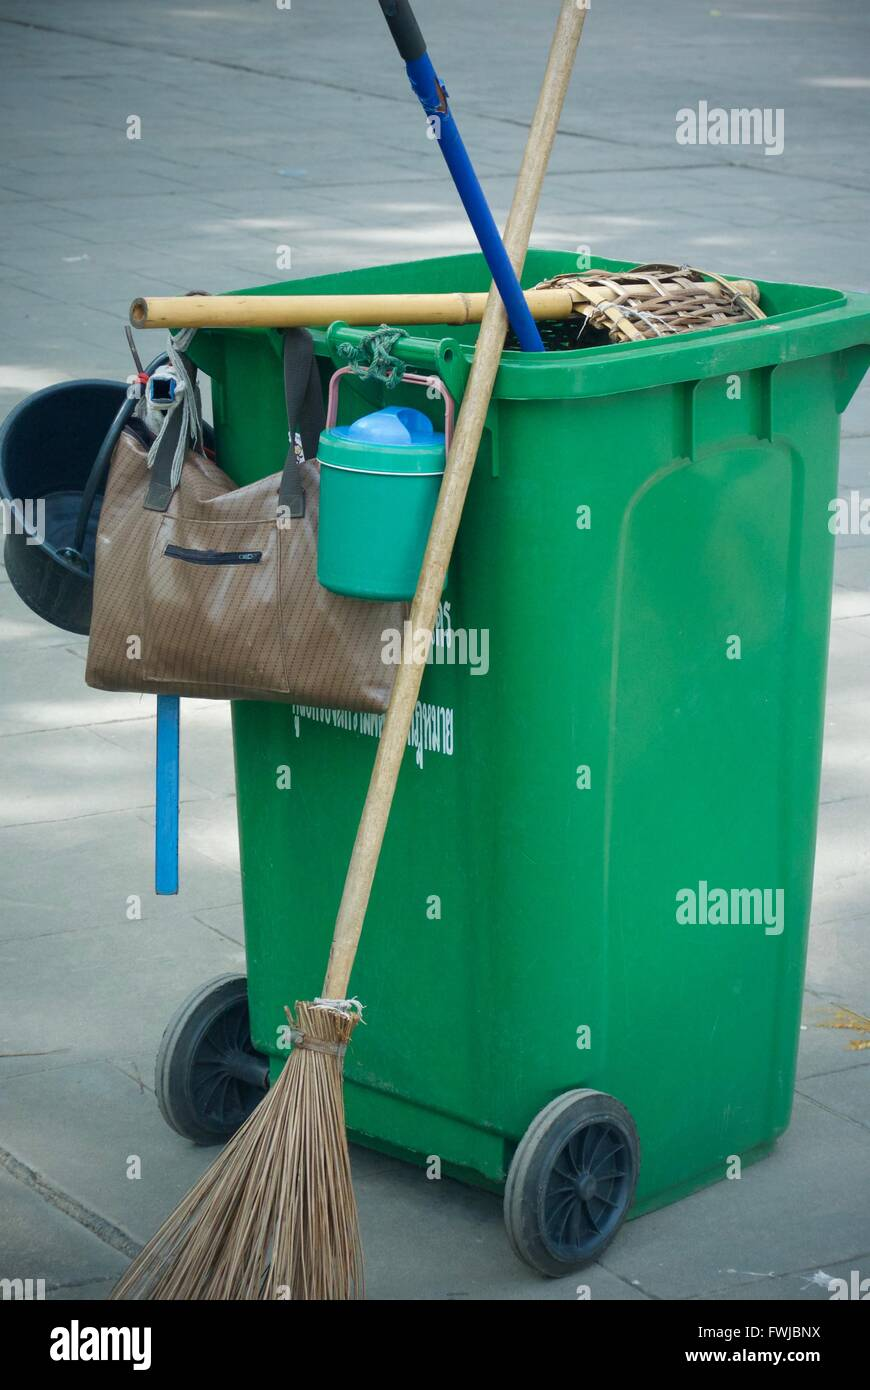 Garbage Can And Broom On Street - Stock Image